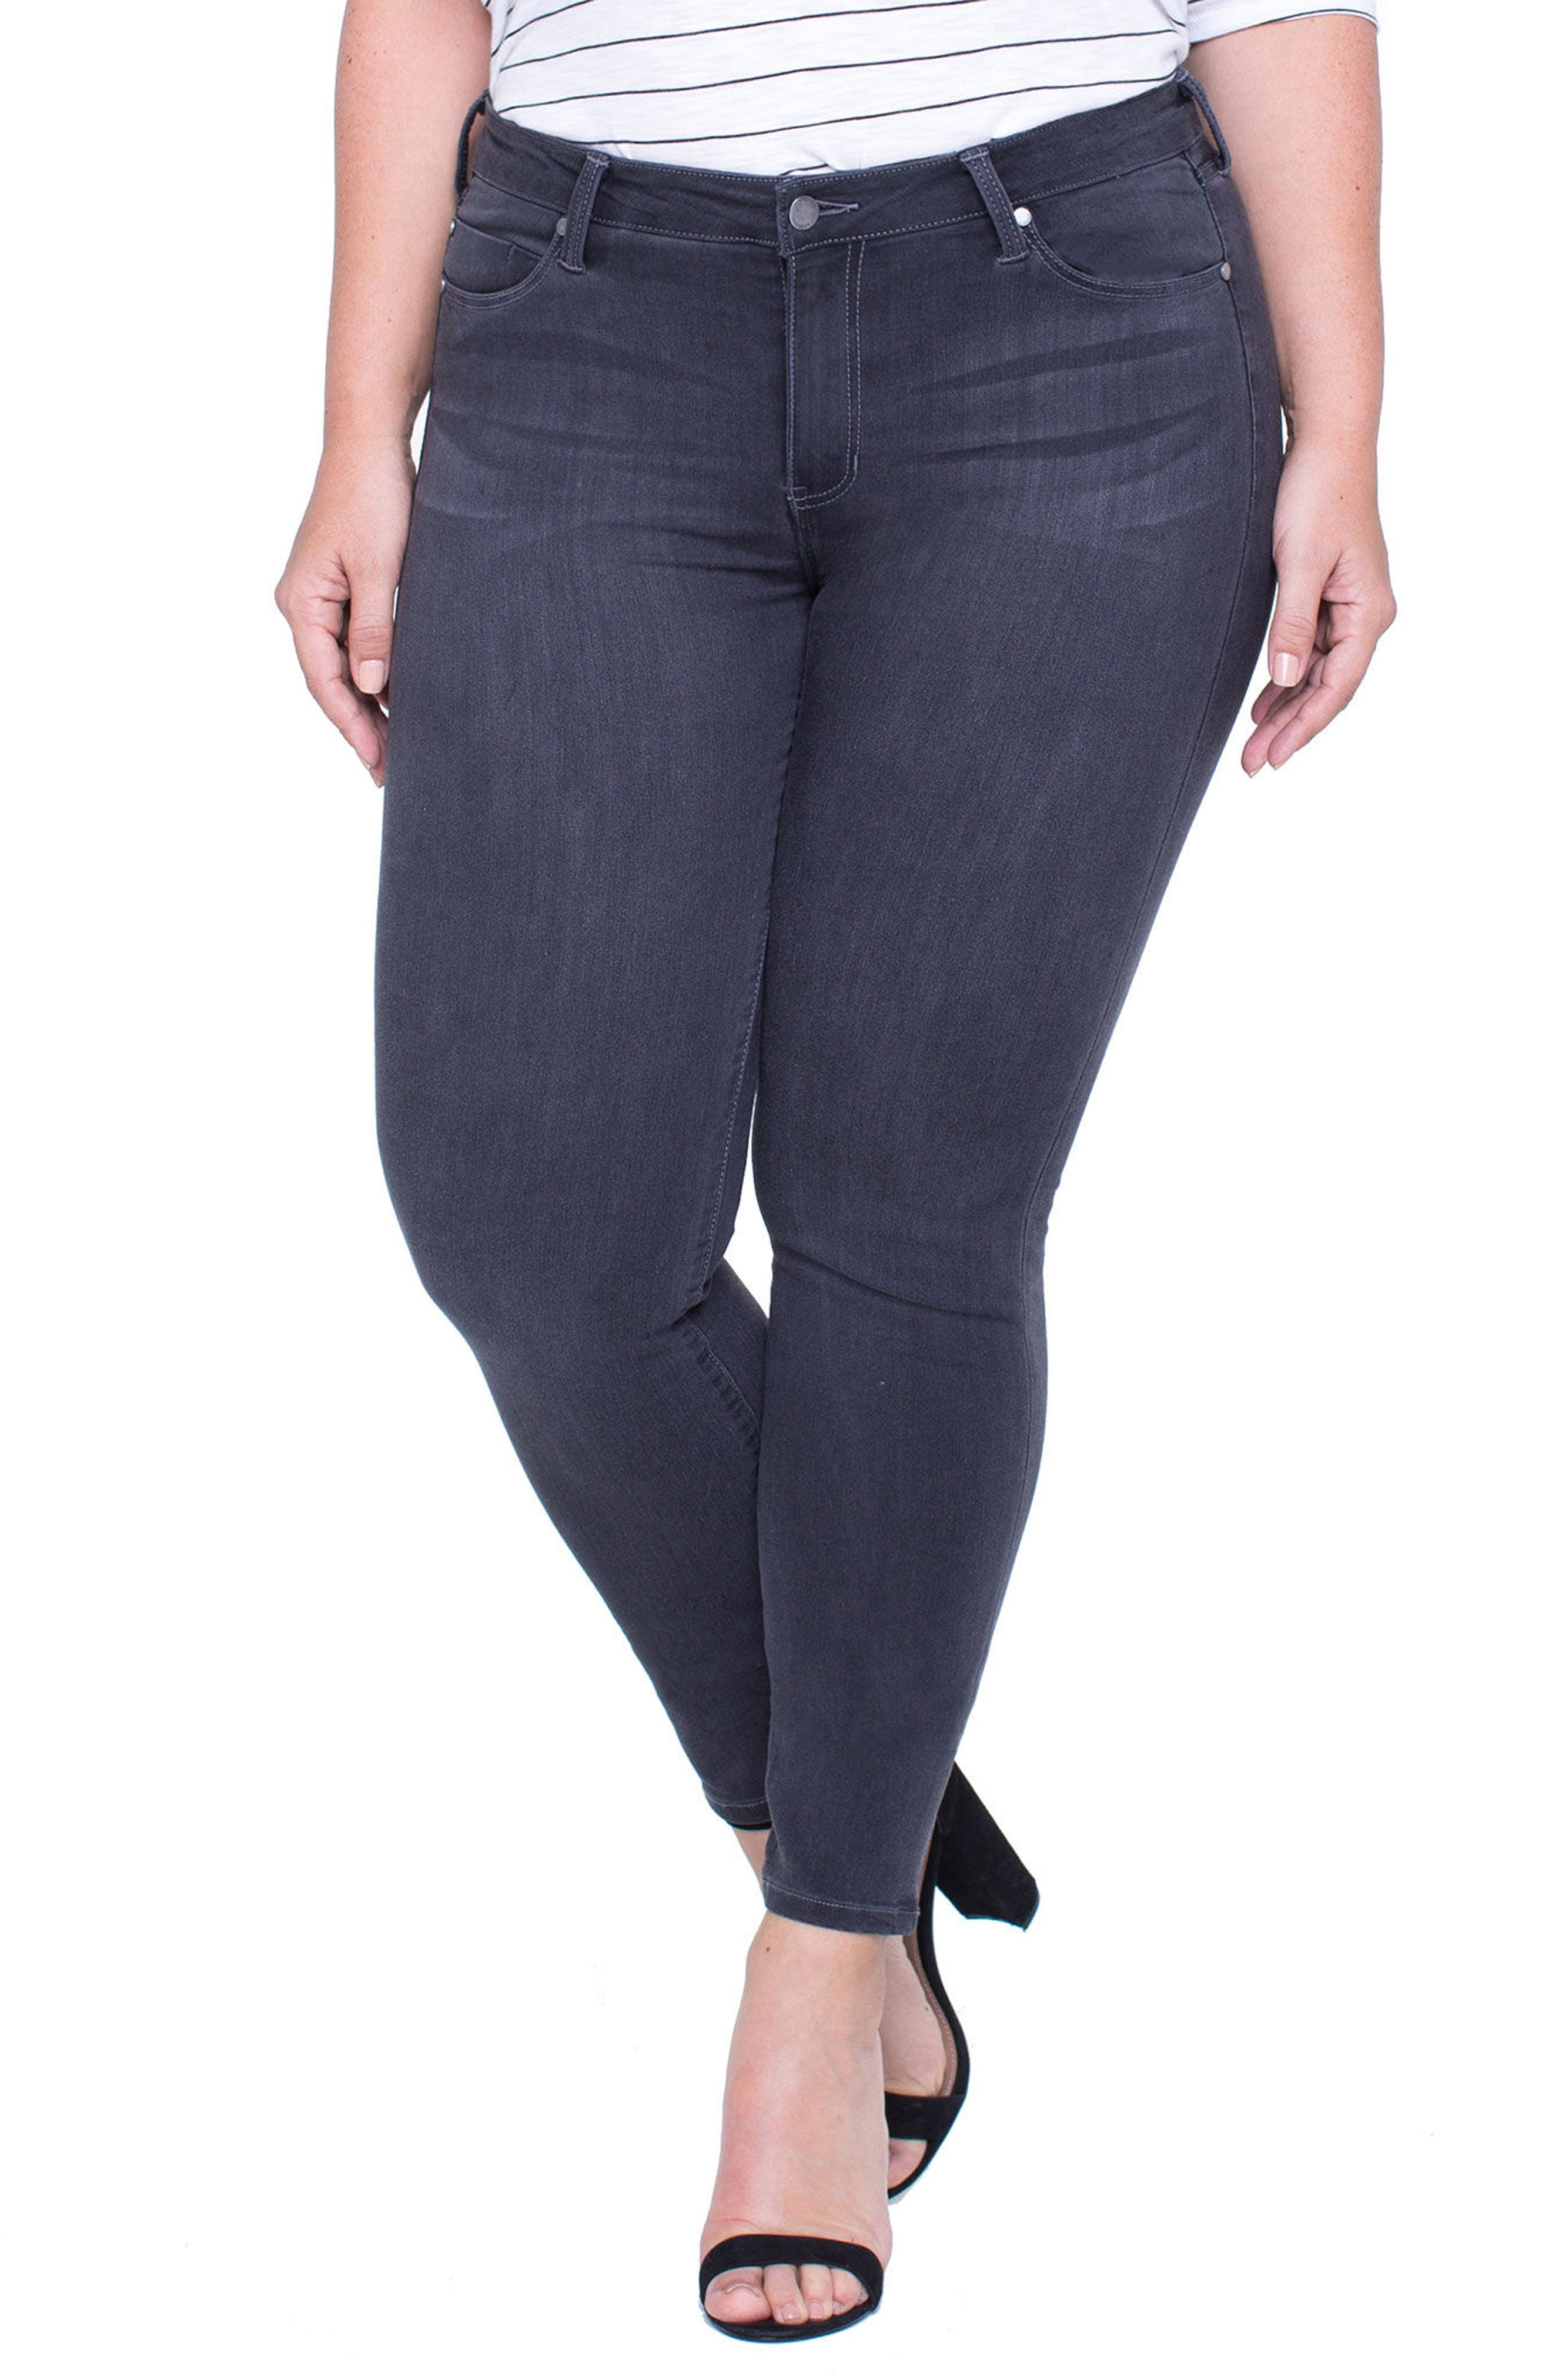 Liverpool Jeans Company Abby Stretch Skinny Jeans (Meteorite) (Plus Size)